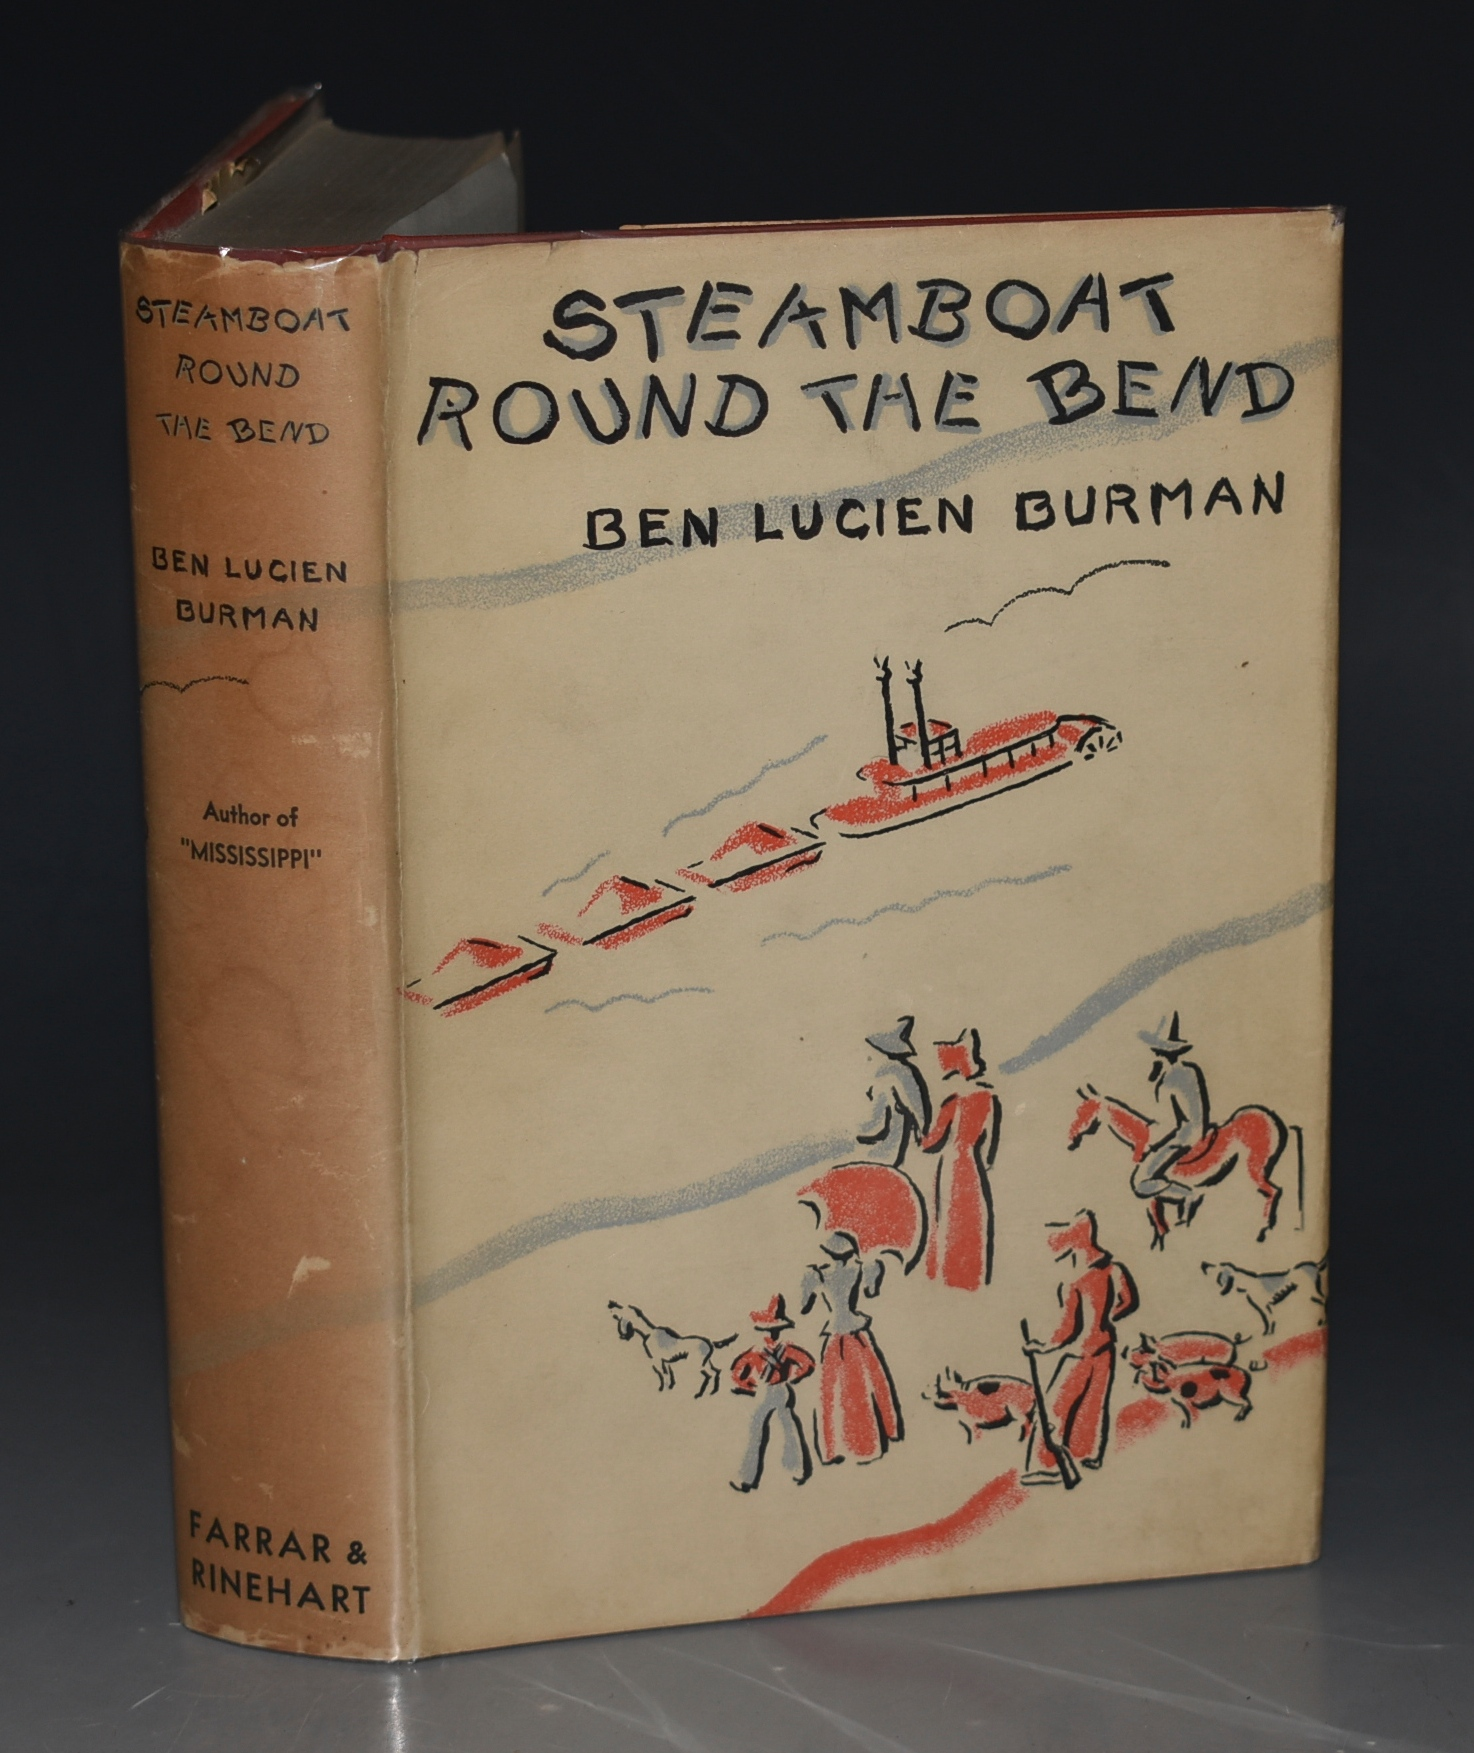 Image for Steamboat Round The Bend With Sketches by Alice Caddy. SIGNED BY AUTHOR.